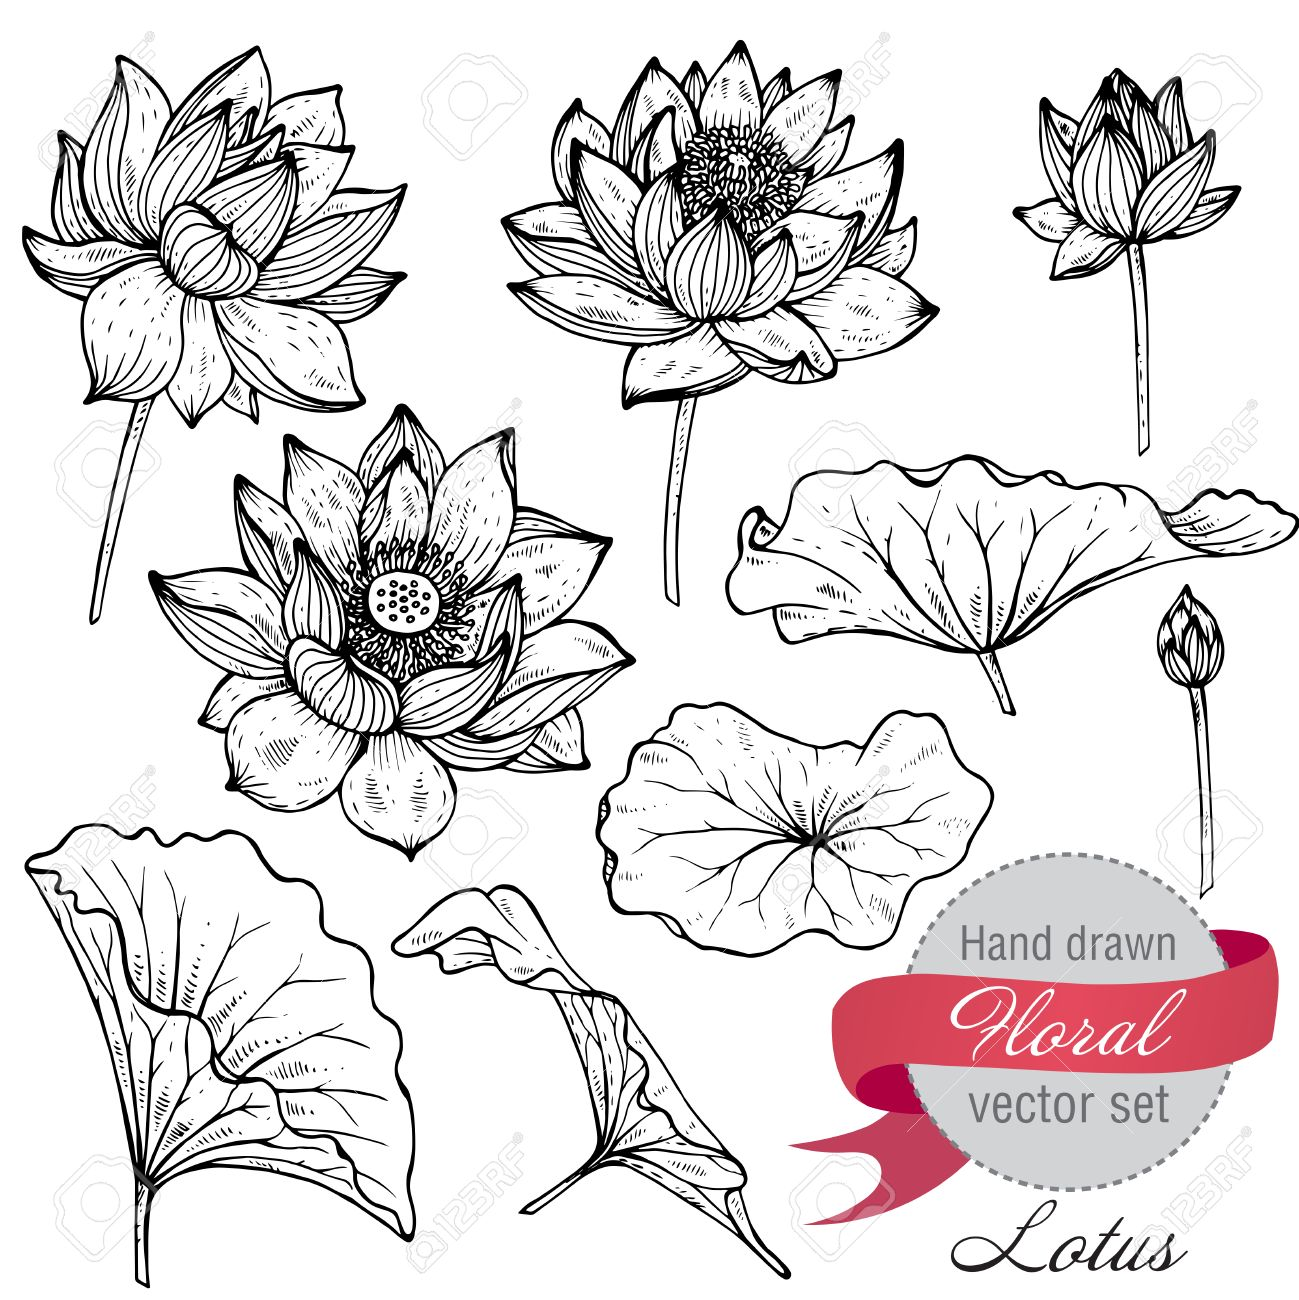 Vector set of hand drawn lotus flowers and leaves sketch floral vector vector set of hand drawn lotus flowers and leaves sketch floral botany collection in graphic black and white style izmirmasajfo